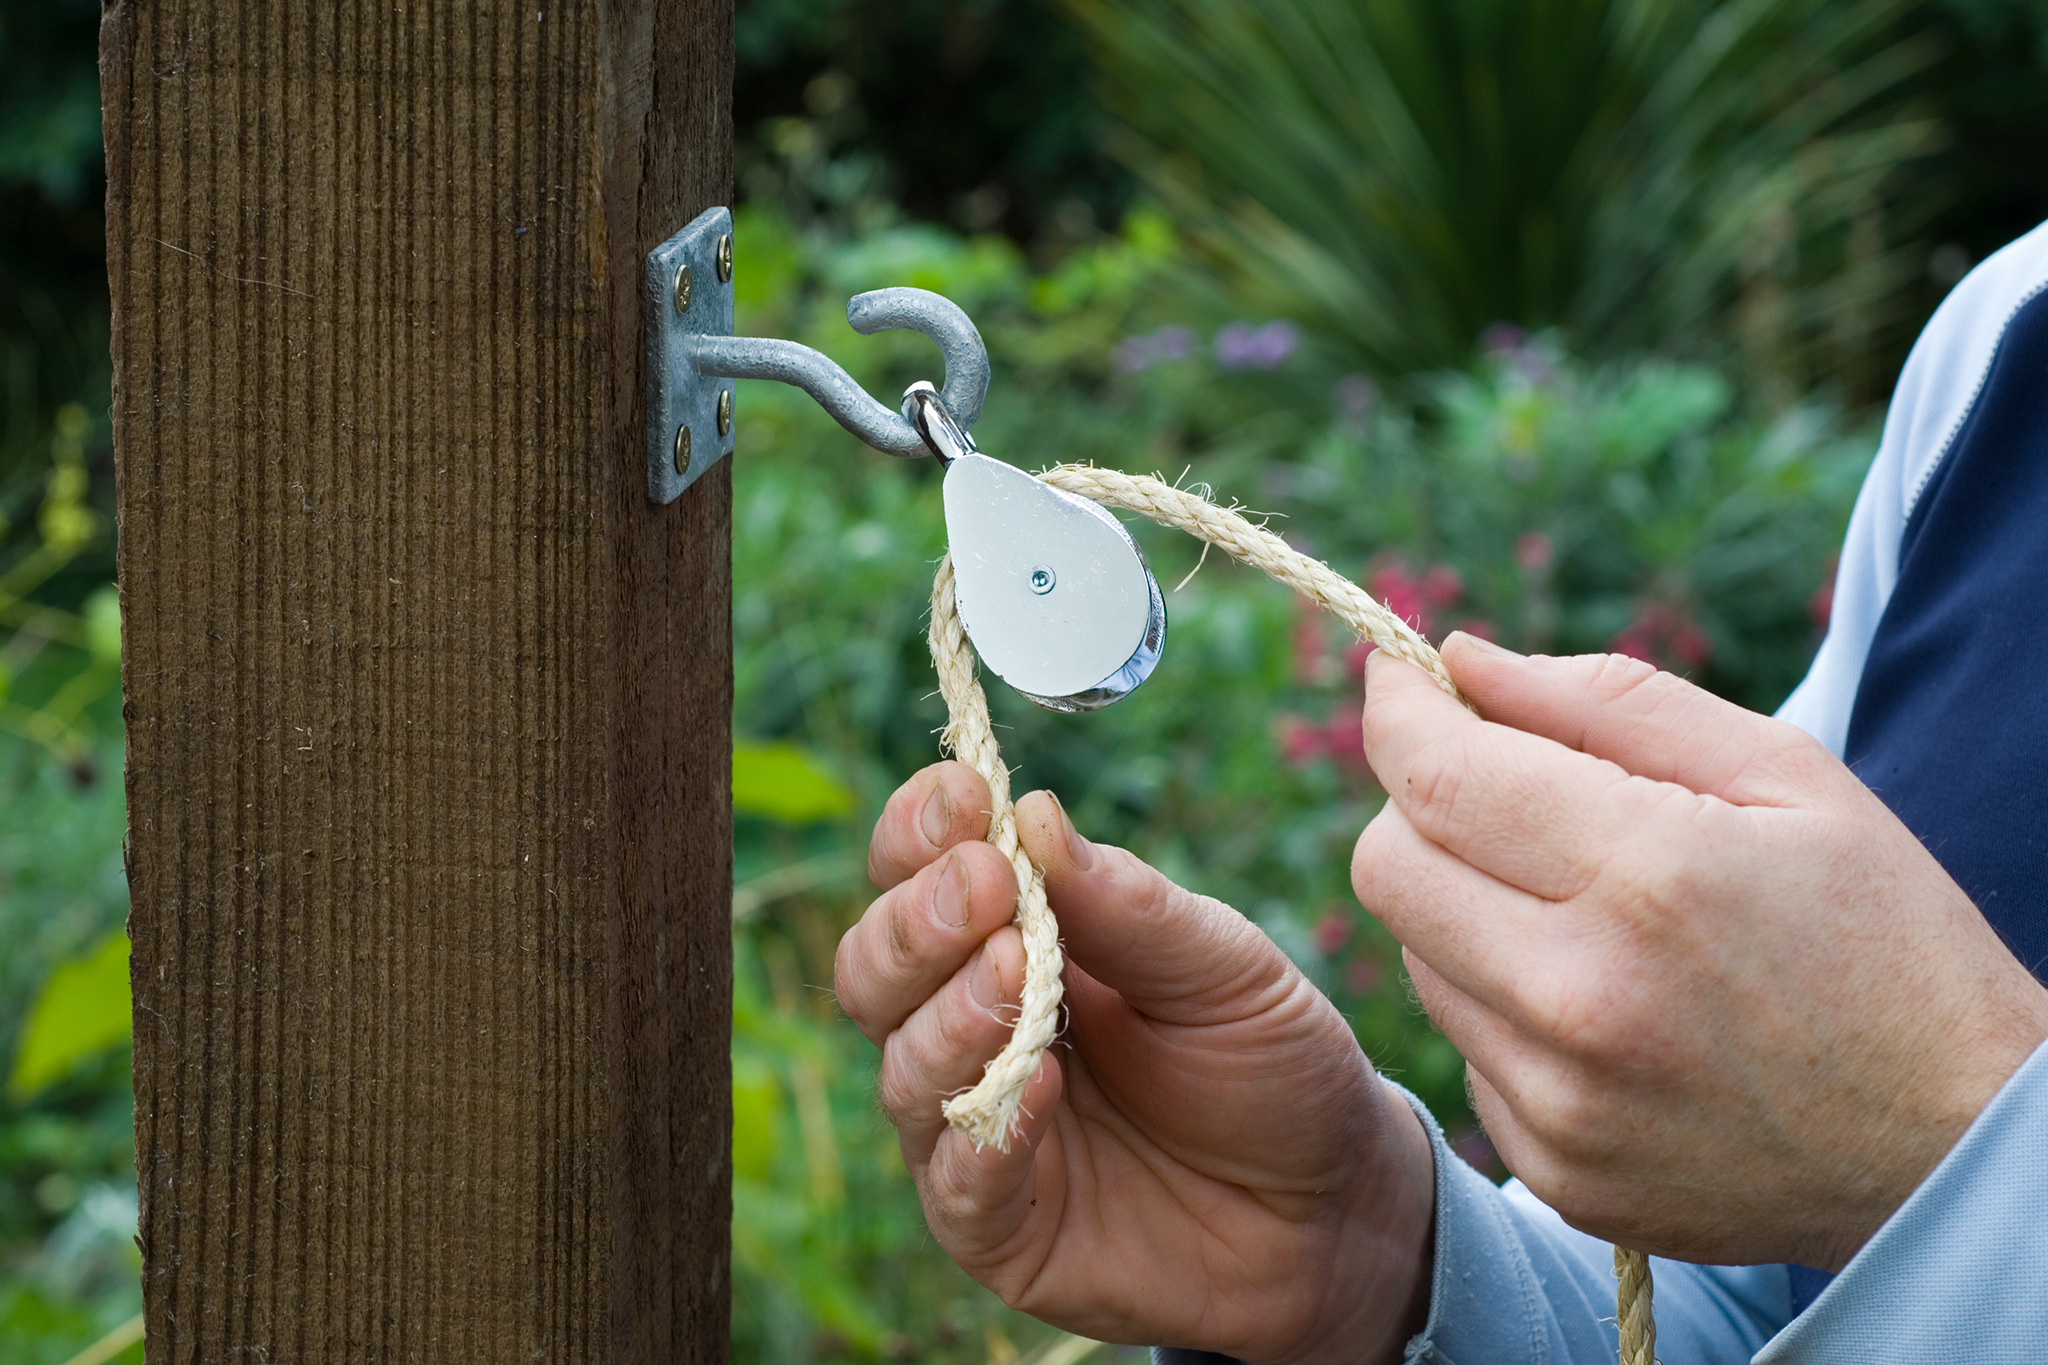 attach-the-wall-plates-to-opposite-posts-then-attach-a-pulley-to-each-hook